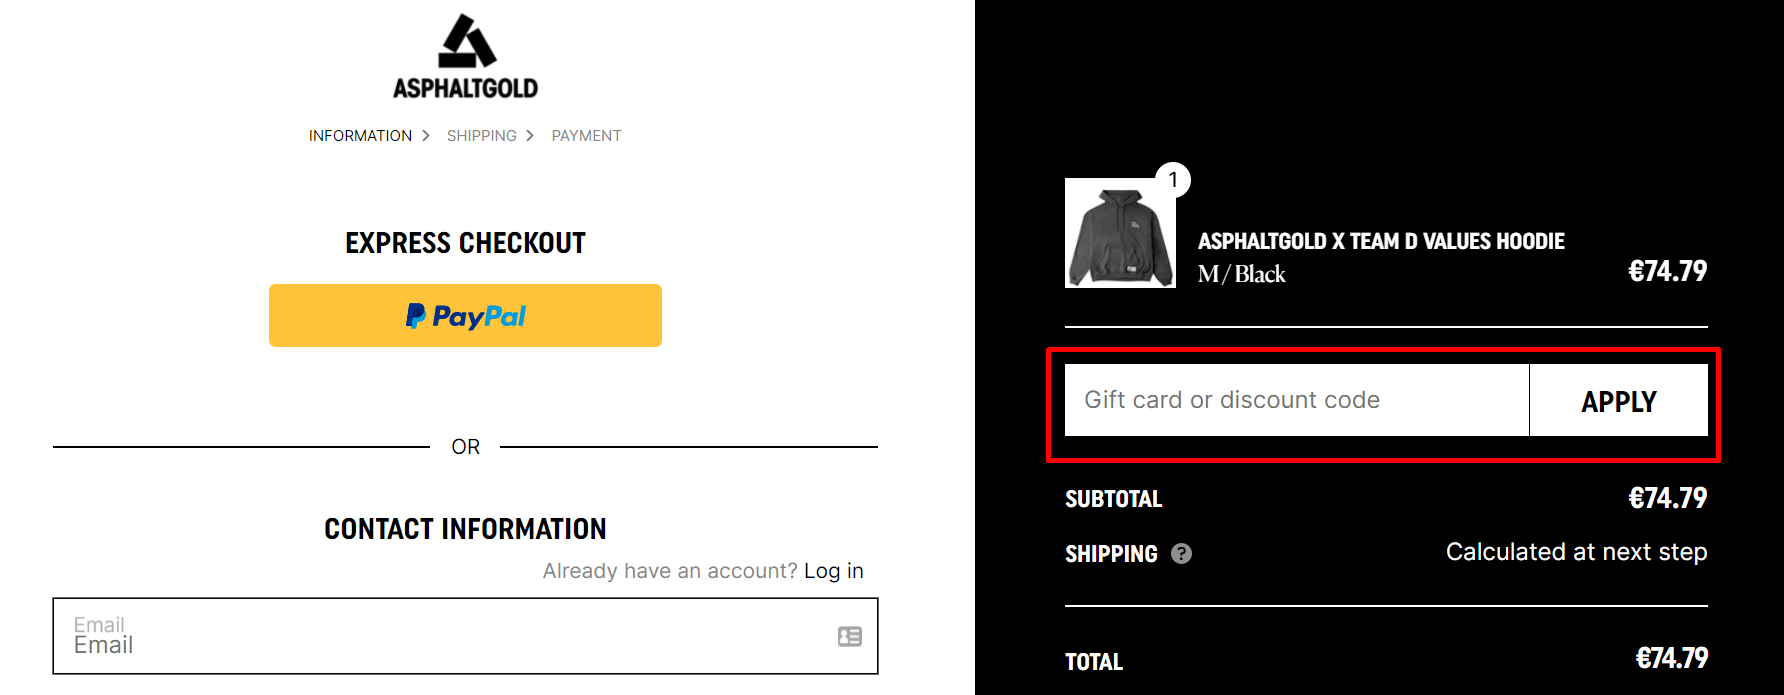 How do I use my asphaltgold discount code?